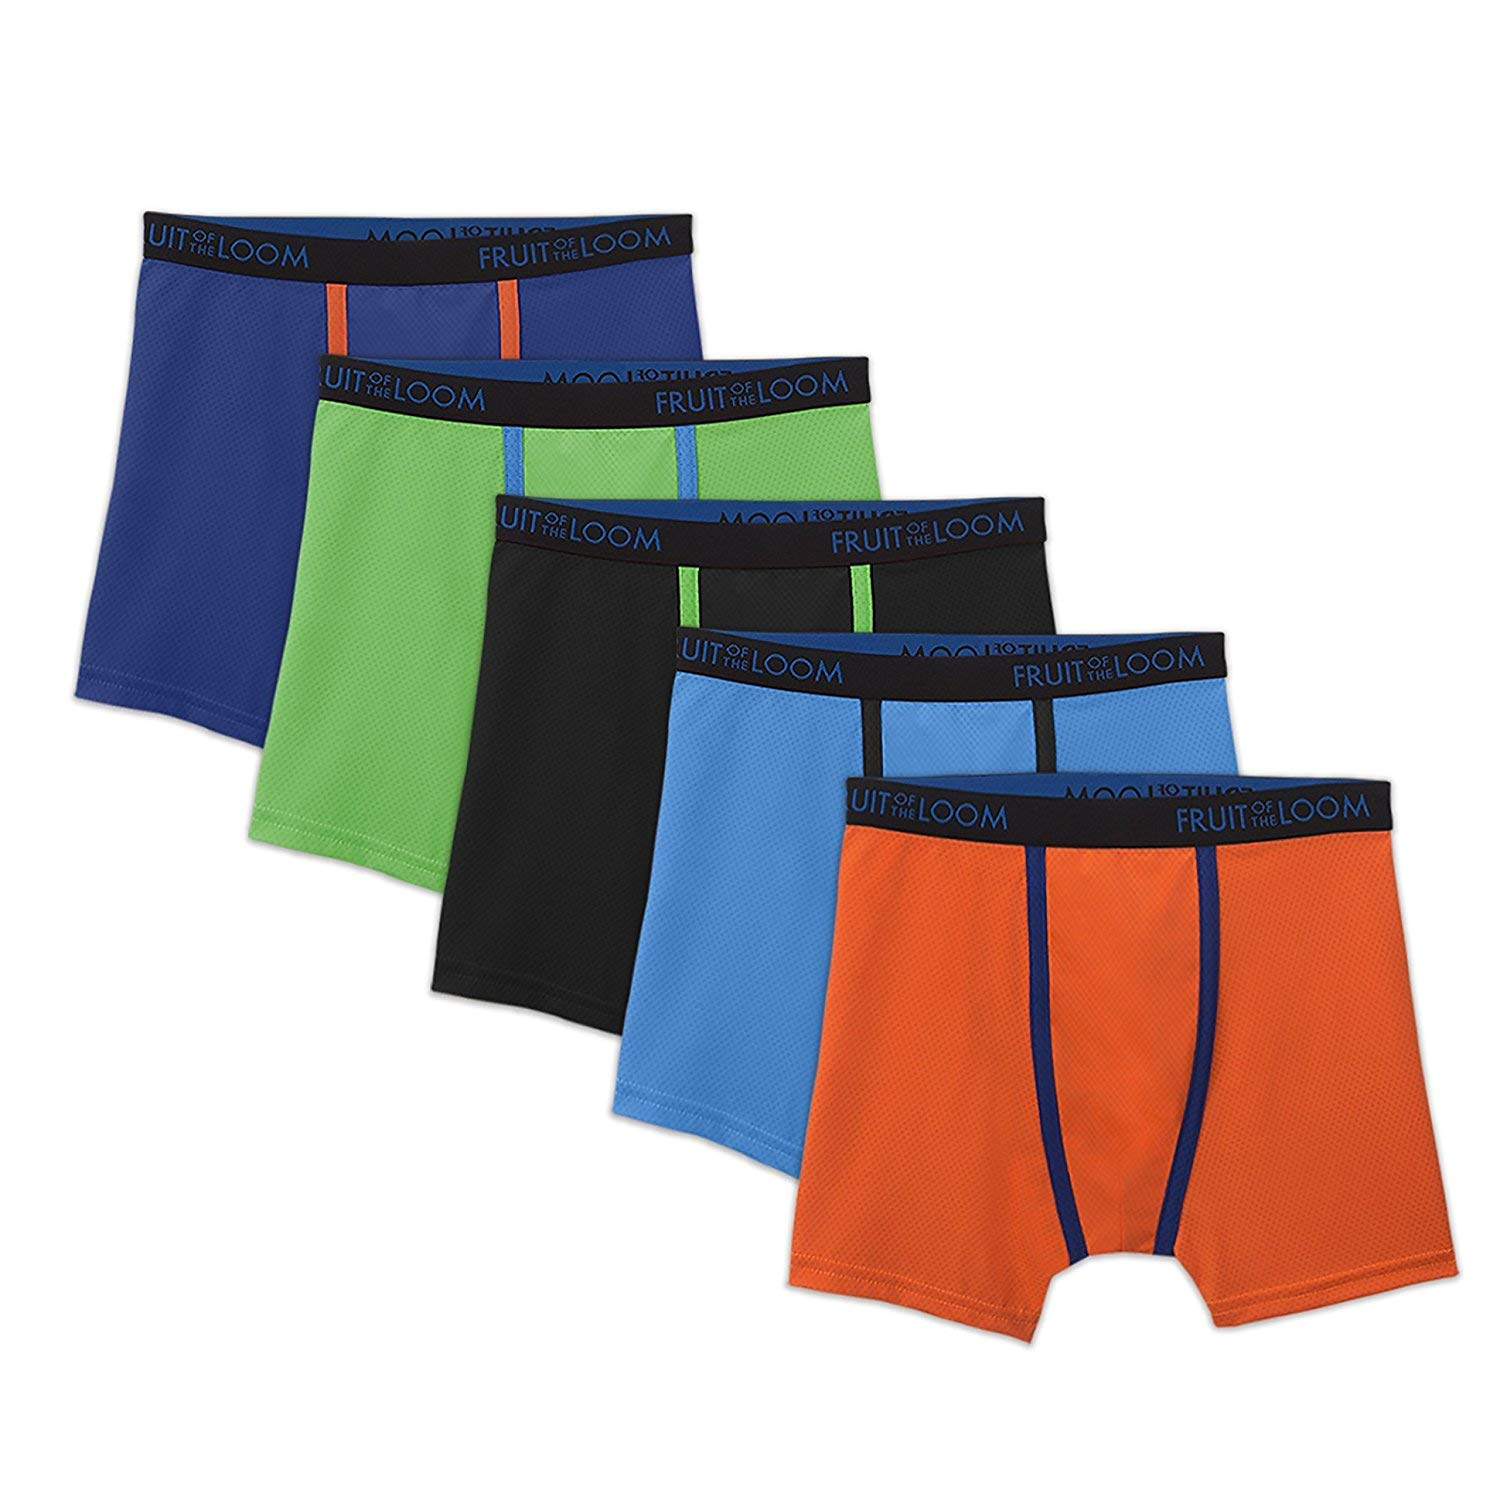 Fruit of the Loom Boys 5 Pack Breathable Boxer Brief Underwear (Small (6-8), Micro/Mesh Assorted)